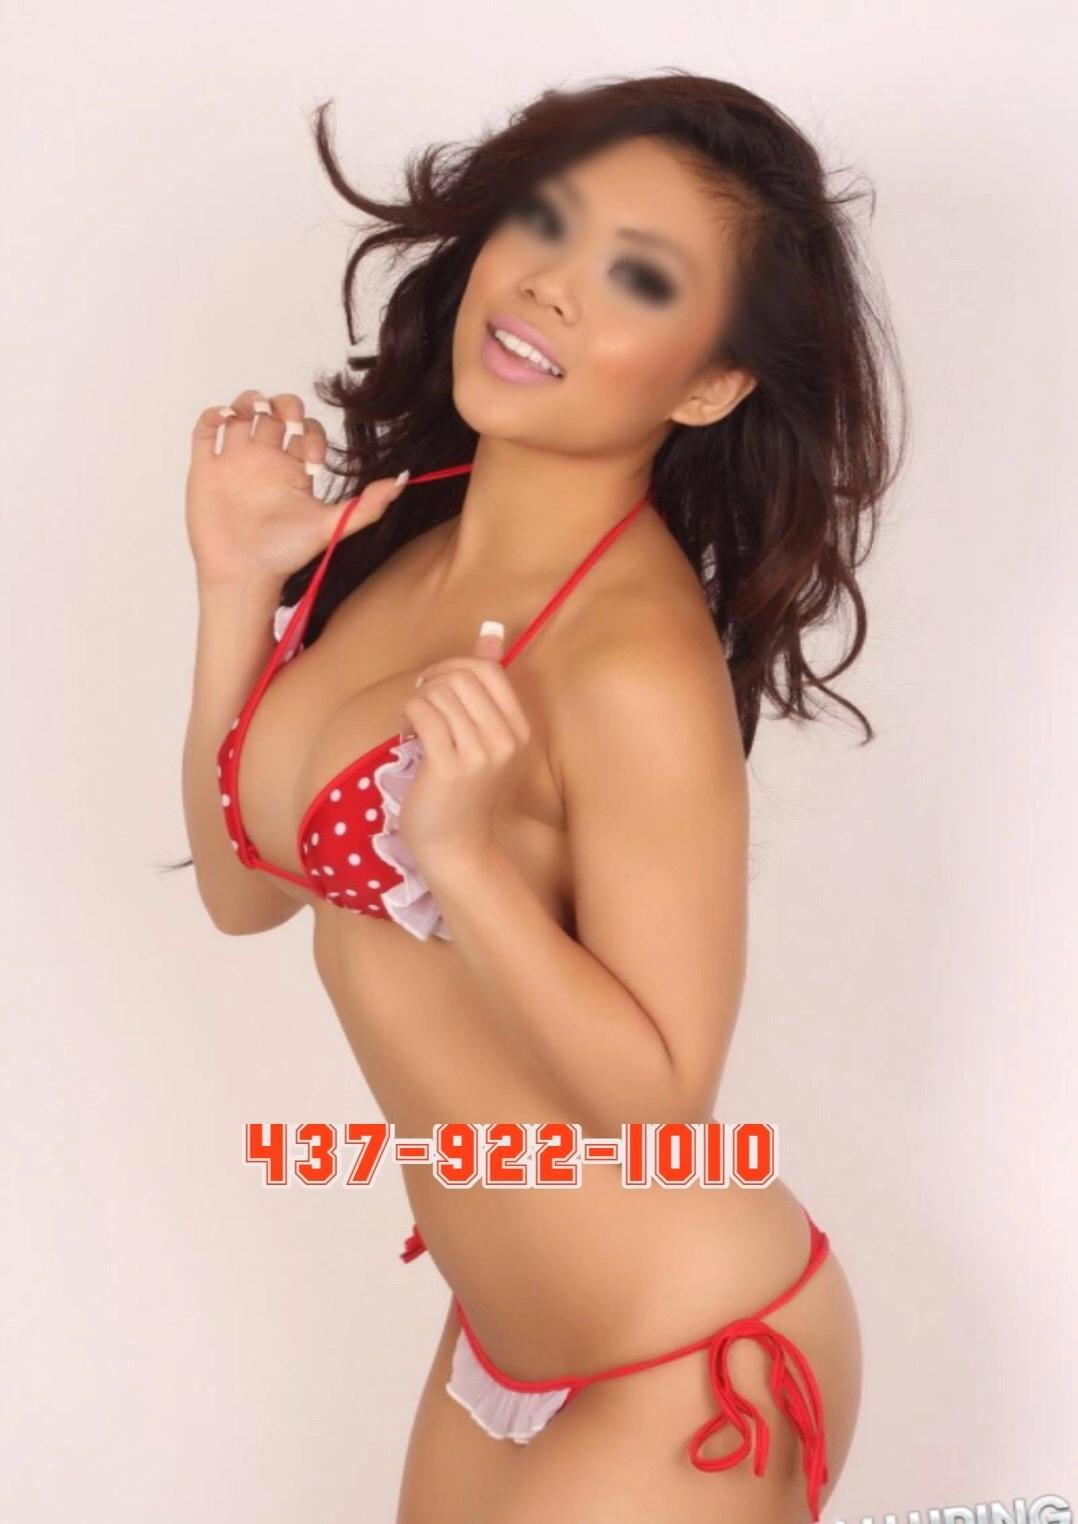 High class Asian Party girl Outcall Only